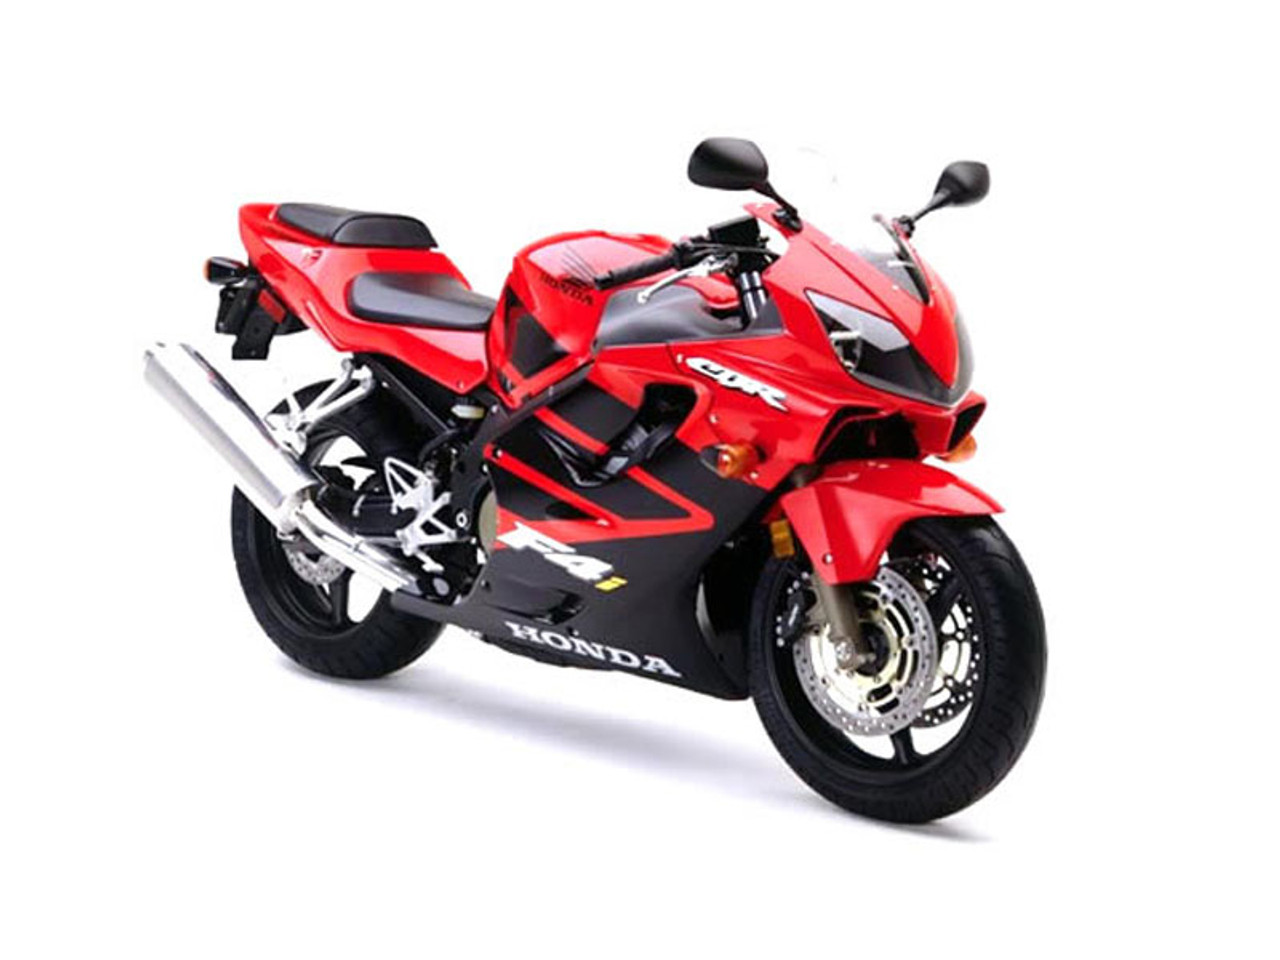 honda cbr 600 f4i 2001 2002 radiator guard rad guard store. Black Bedroom Furniture Sets. Home Design Ideas